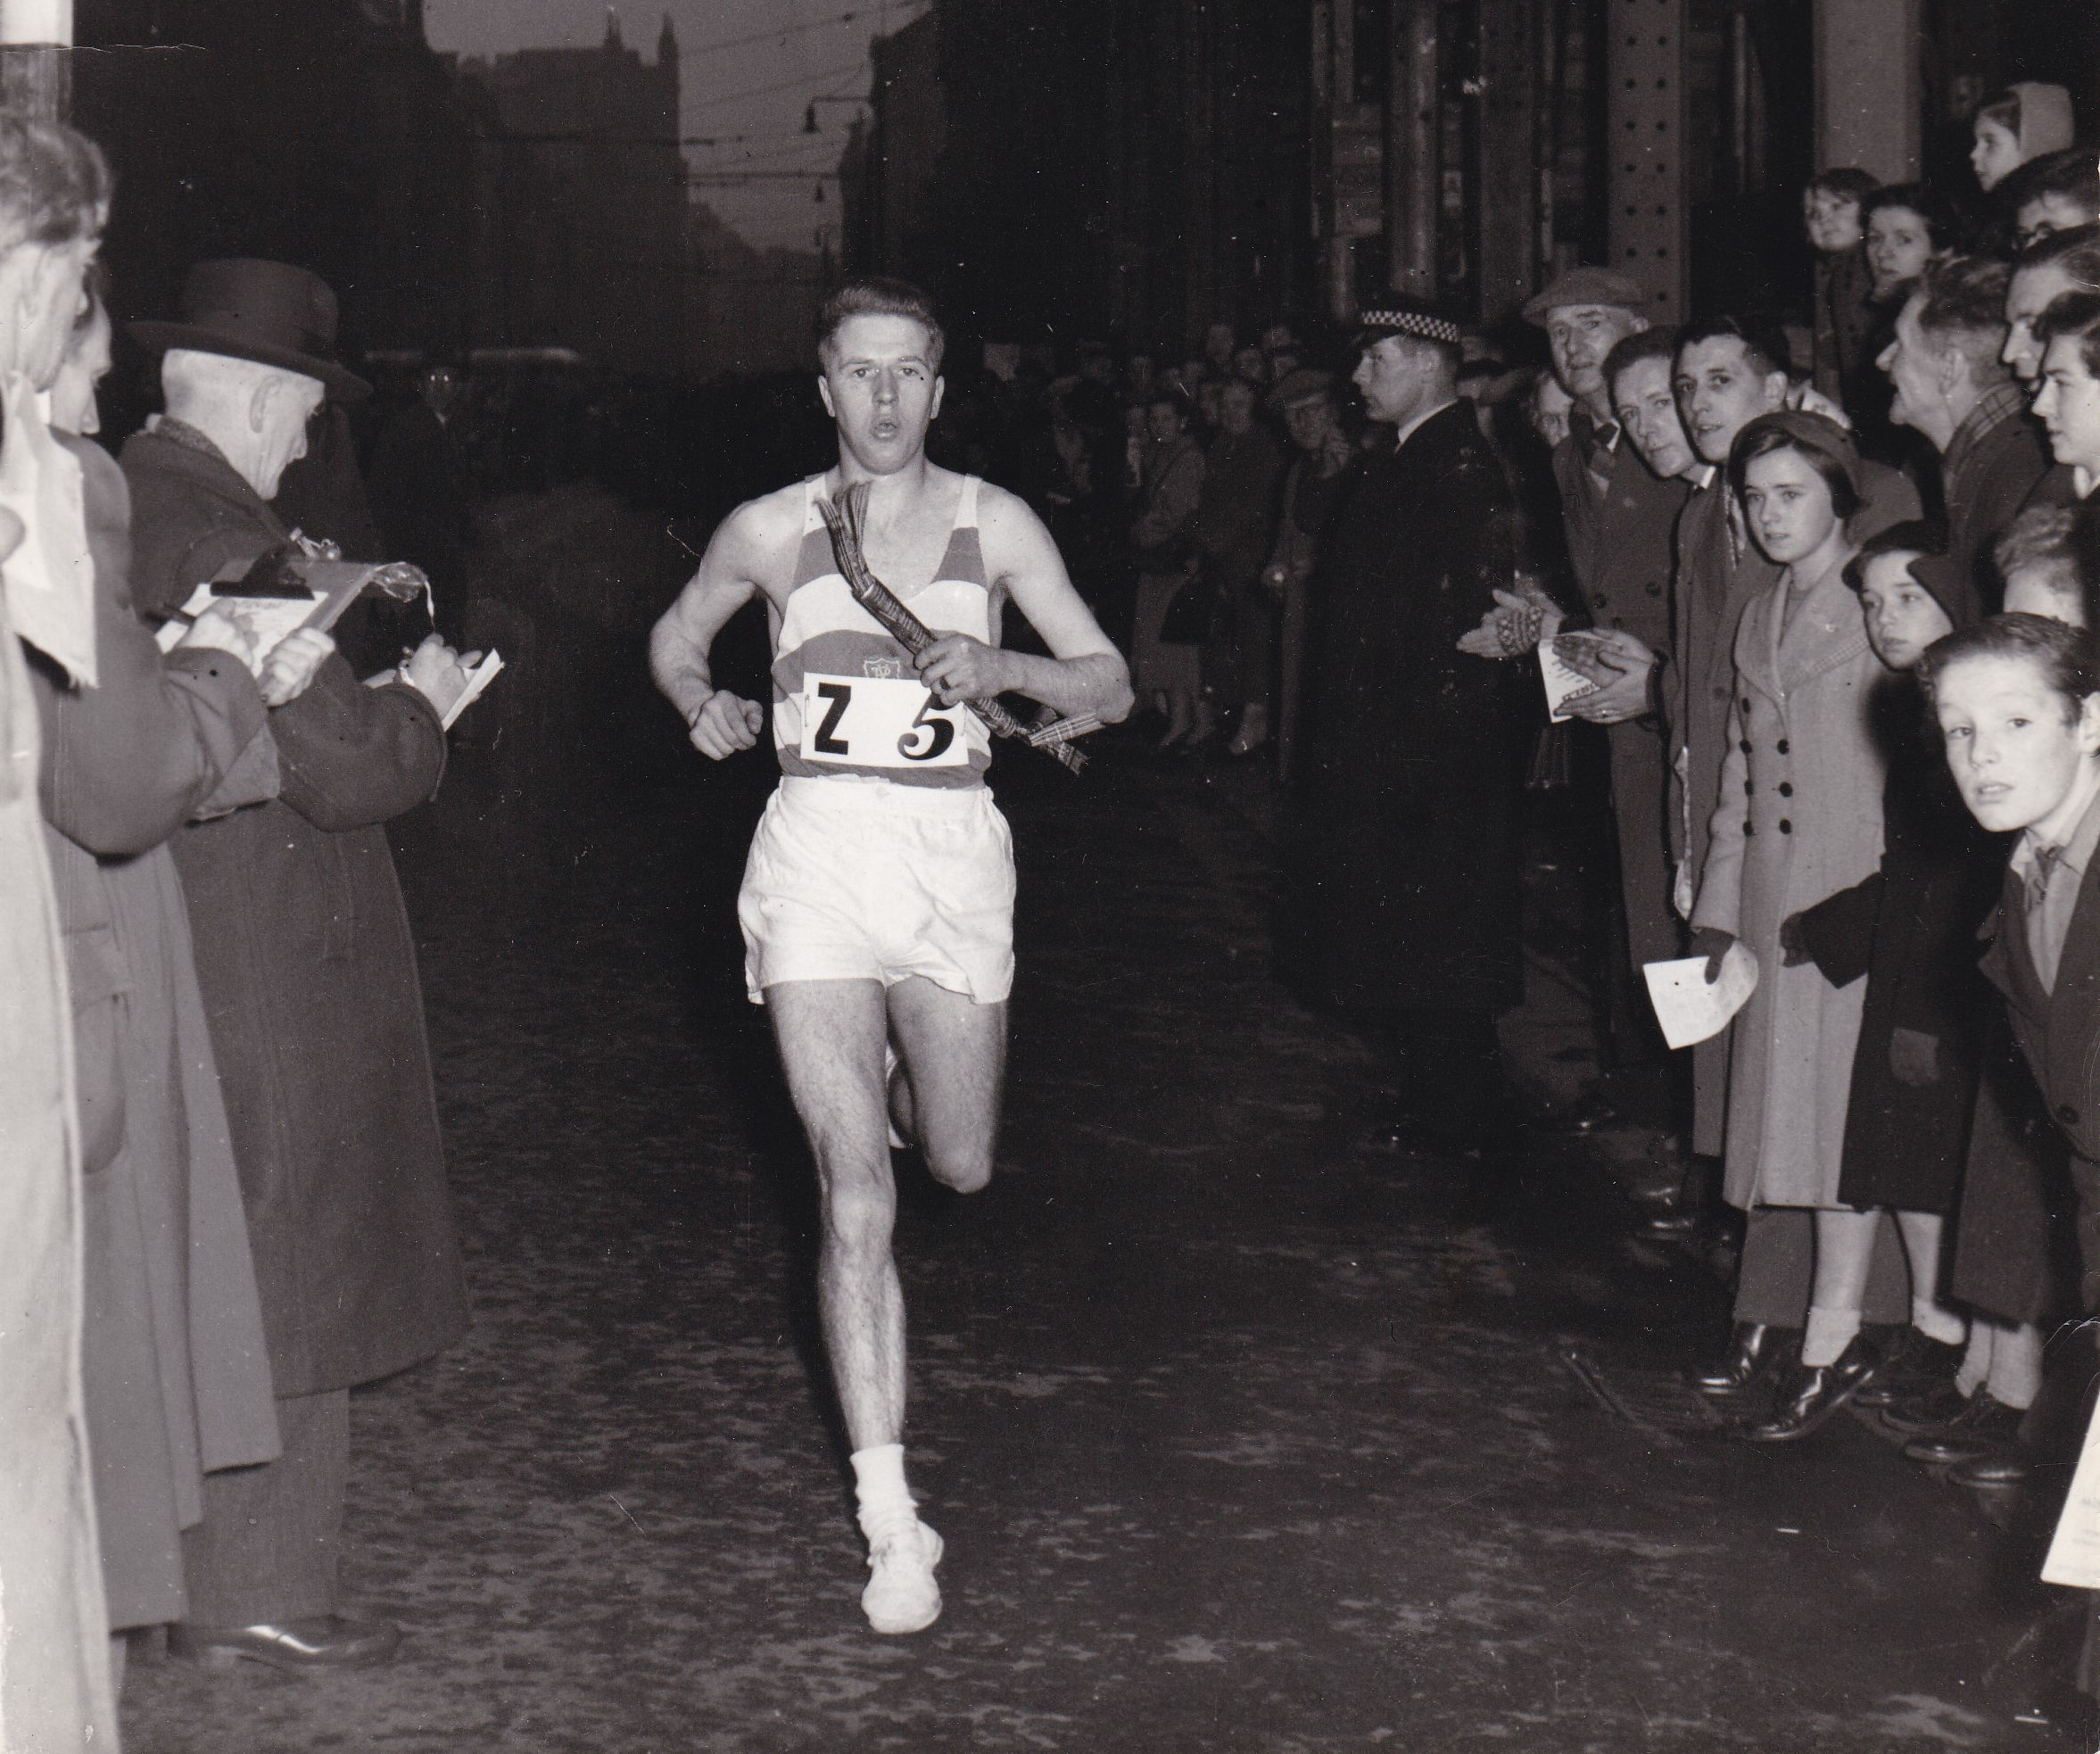 Sid Ellis crossing the finishing line 1956